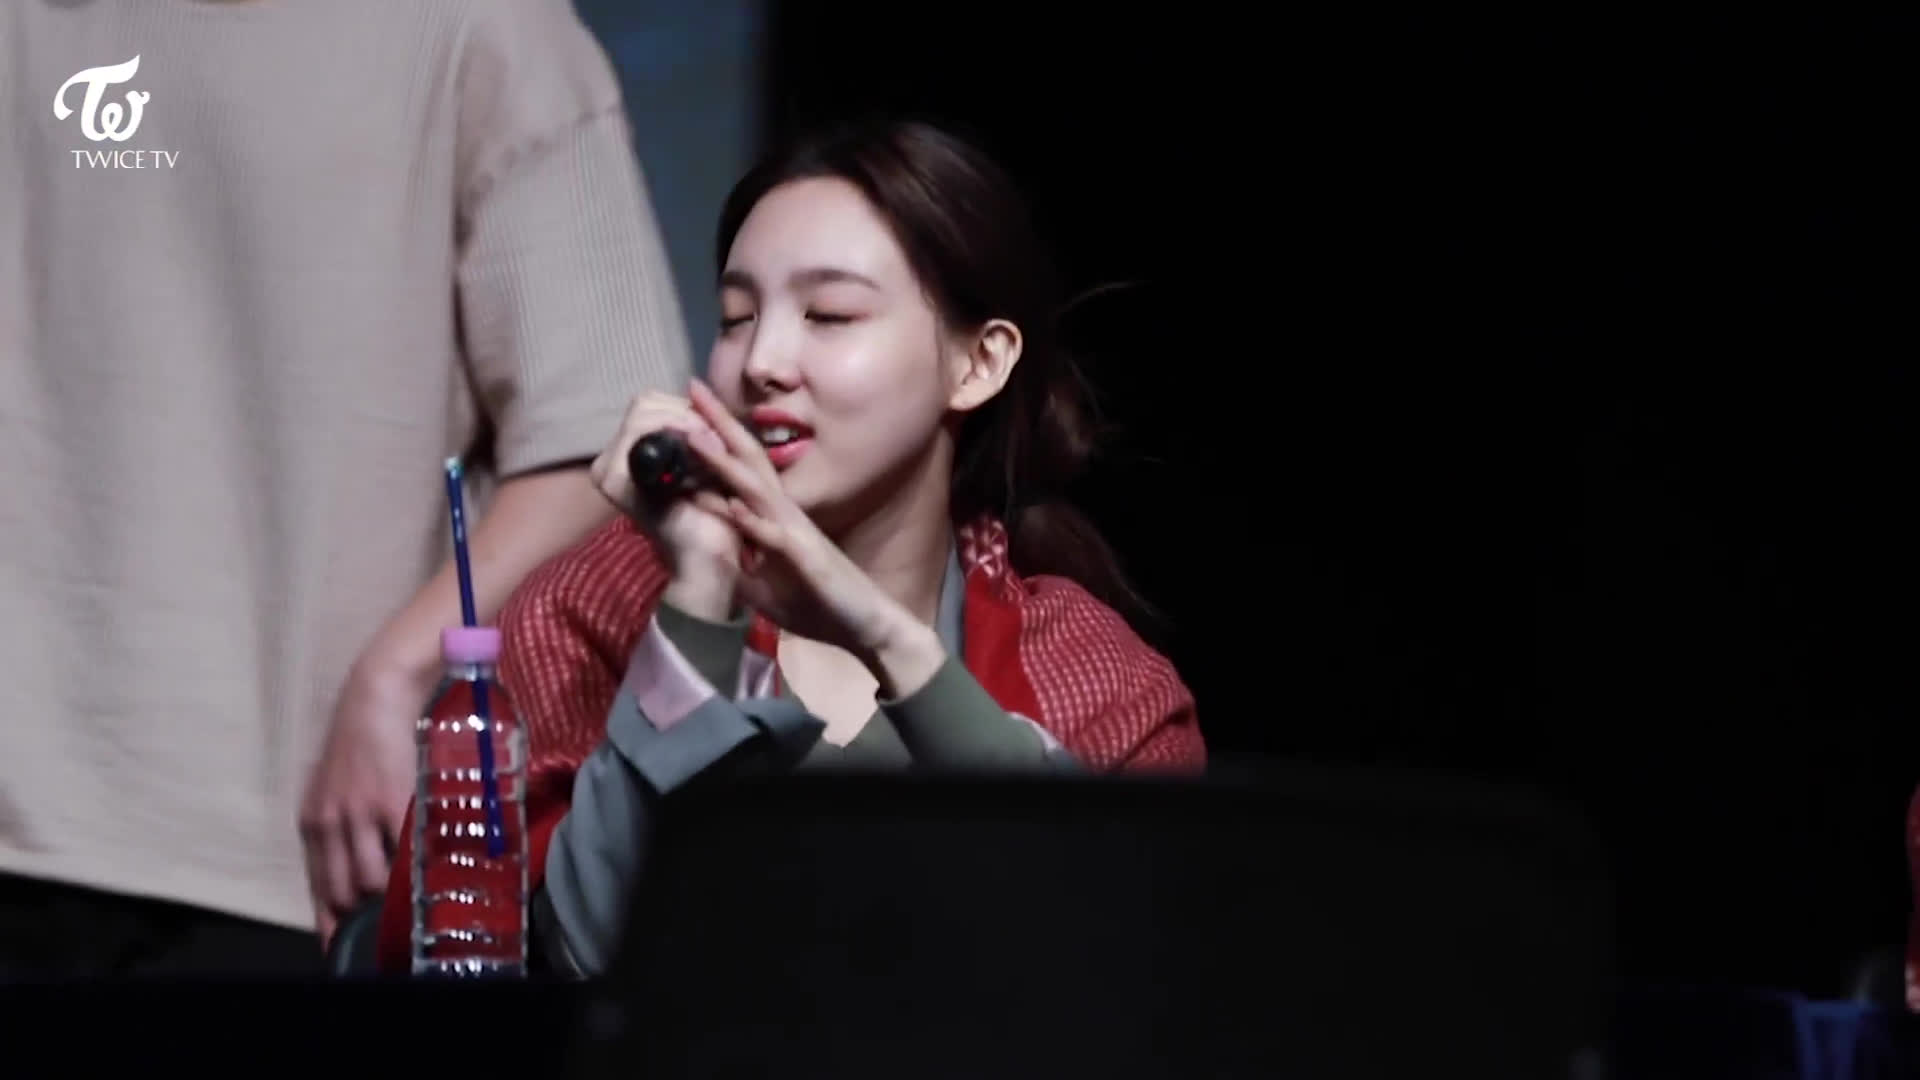 [AutoCut_NAYEON] TWICE July Highlight